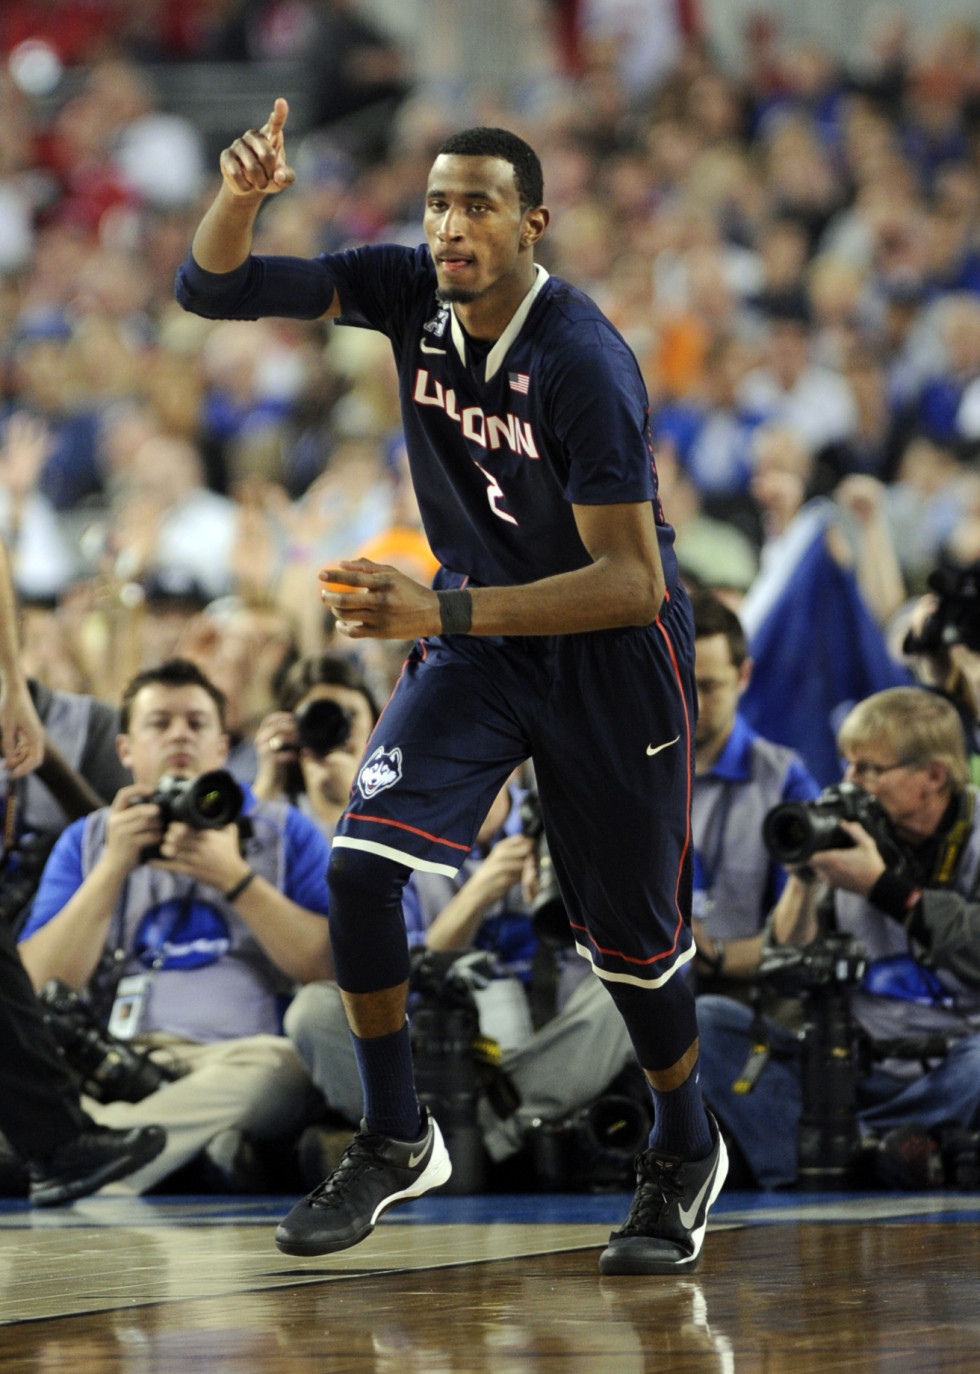 DeAndre Daniels signals #1 after scoring a 3-pointer in the 2nd half as UConn pulled ahead.